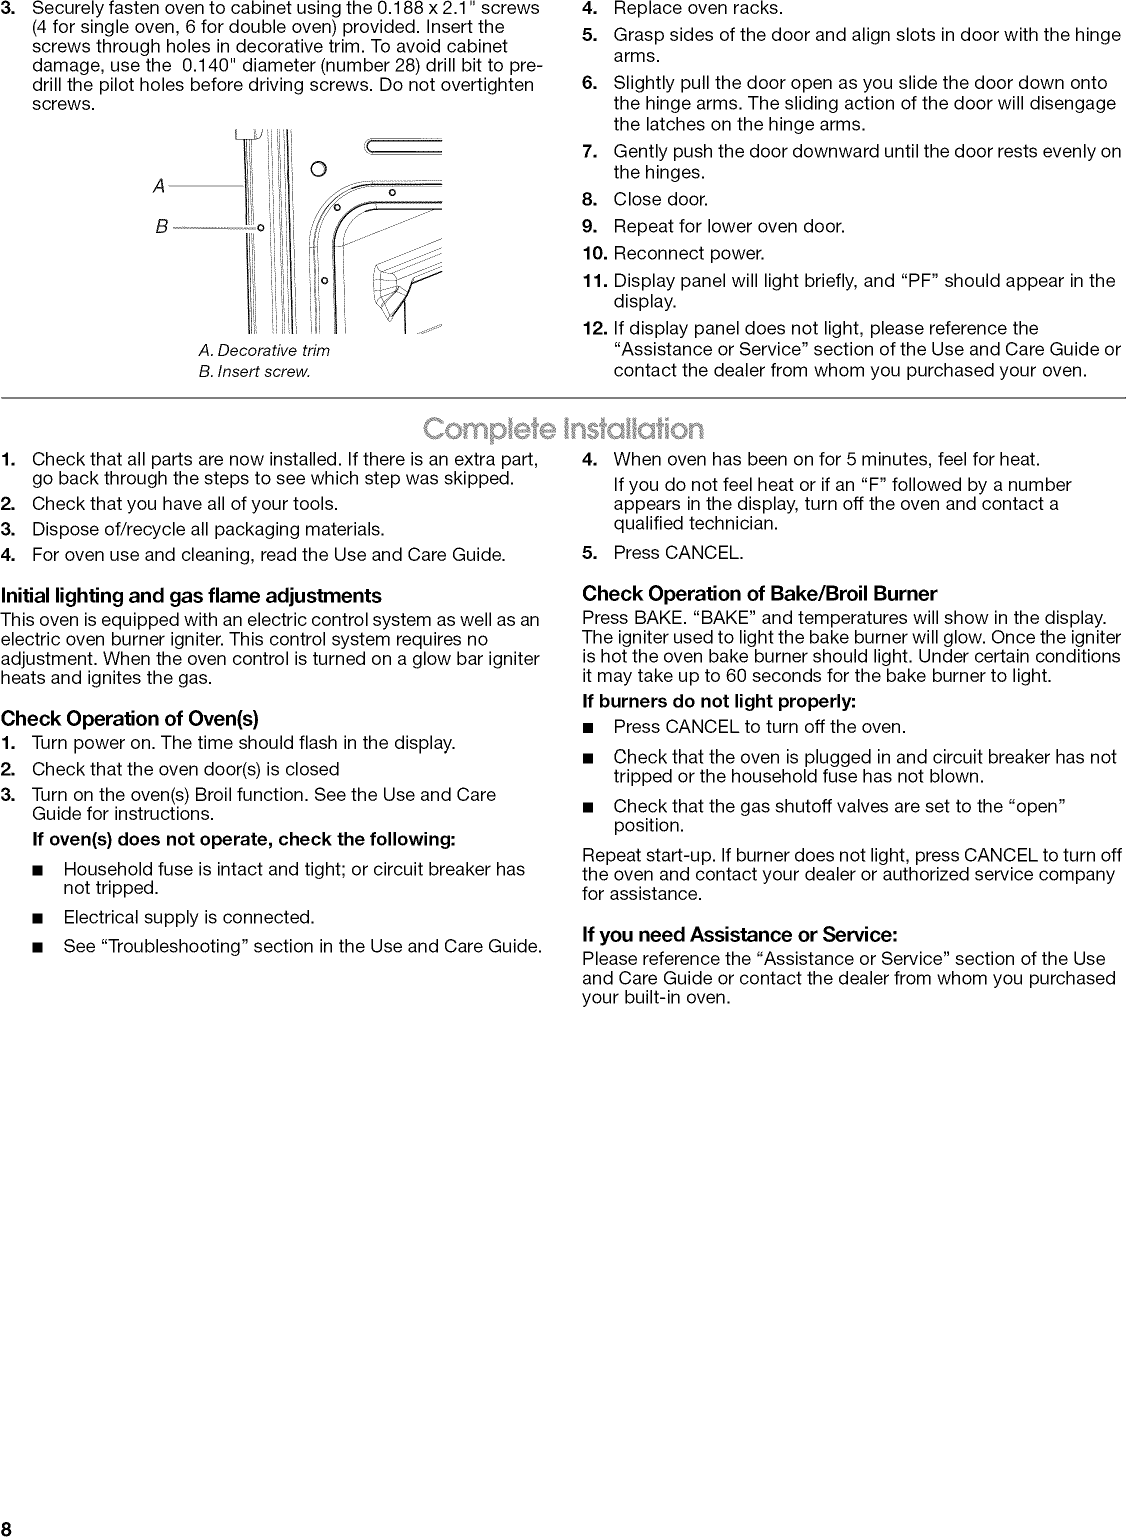 Maytag Cwg3100aas13 User Manual 24 Built In Gas Oven Manuals And Stove Element Wiring Diagram Page 8 Of 12